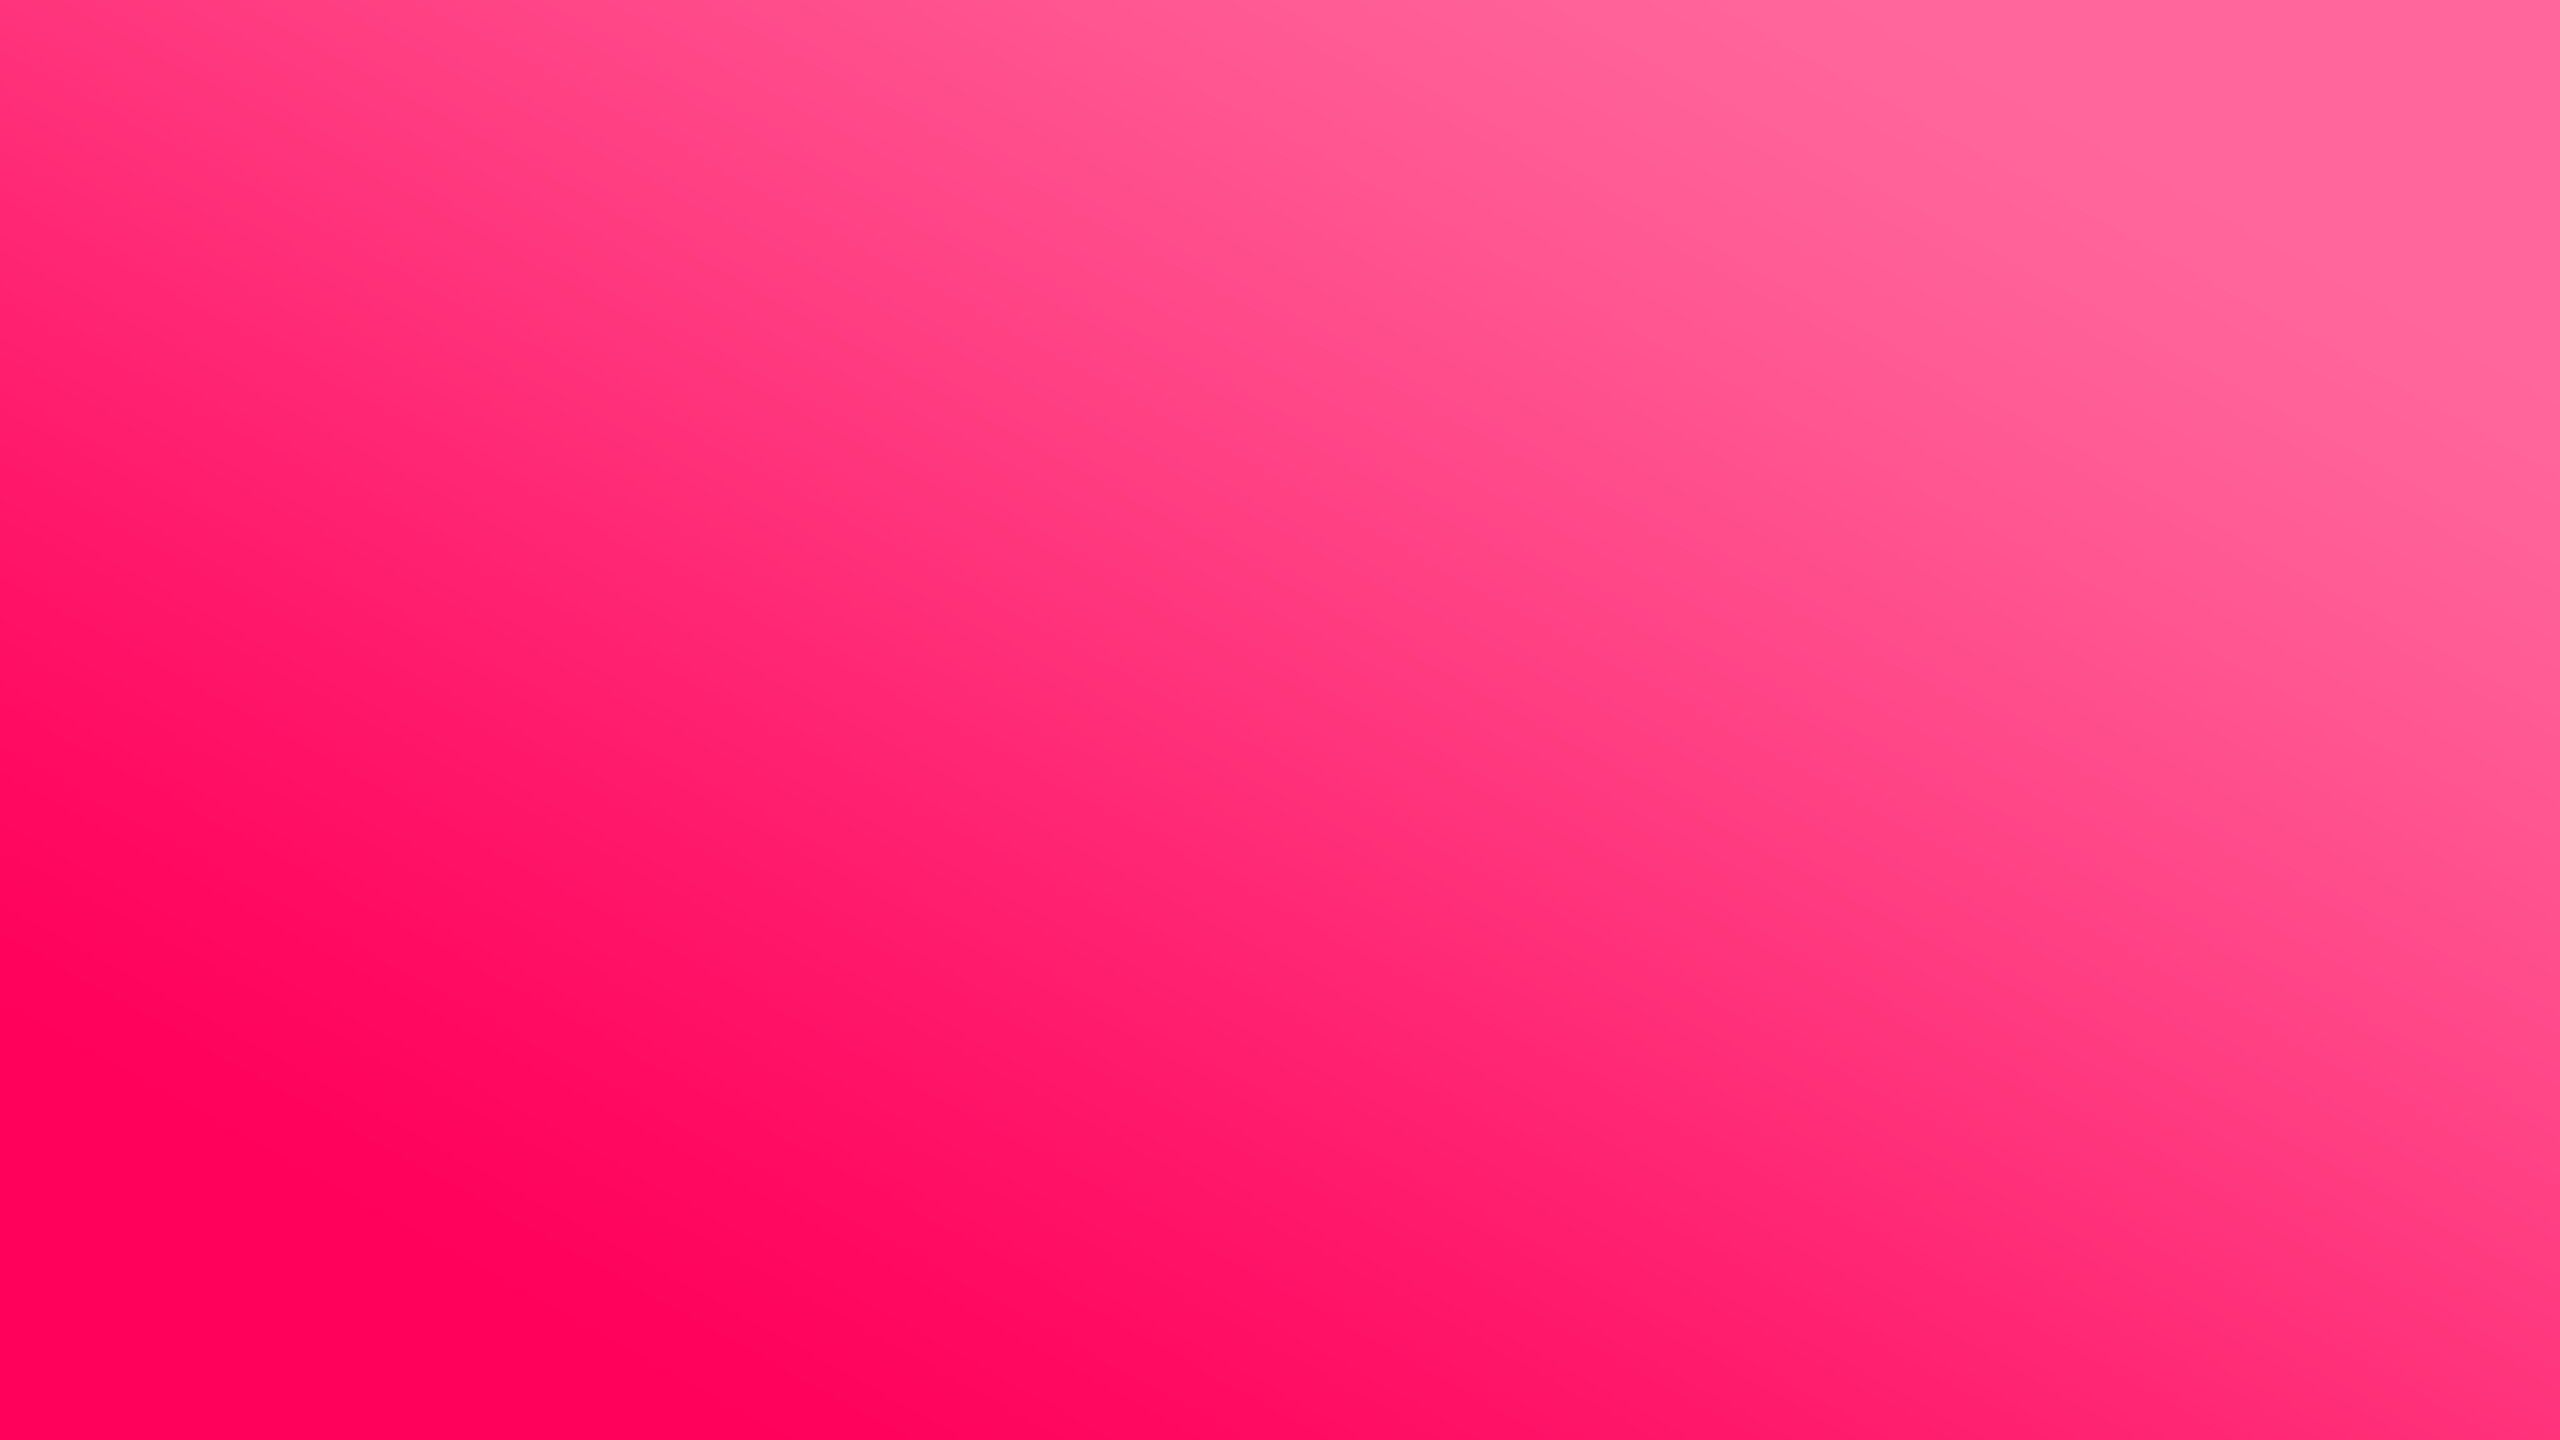 White Solid Color Backgrounds Wallpapers Large Pink Color